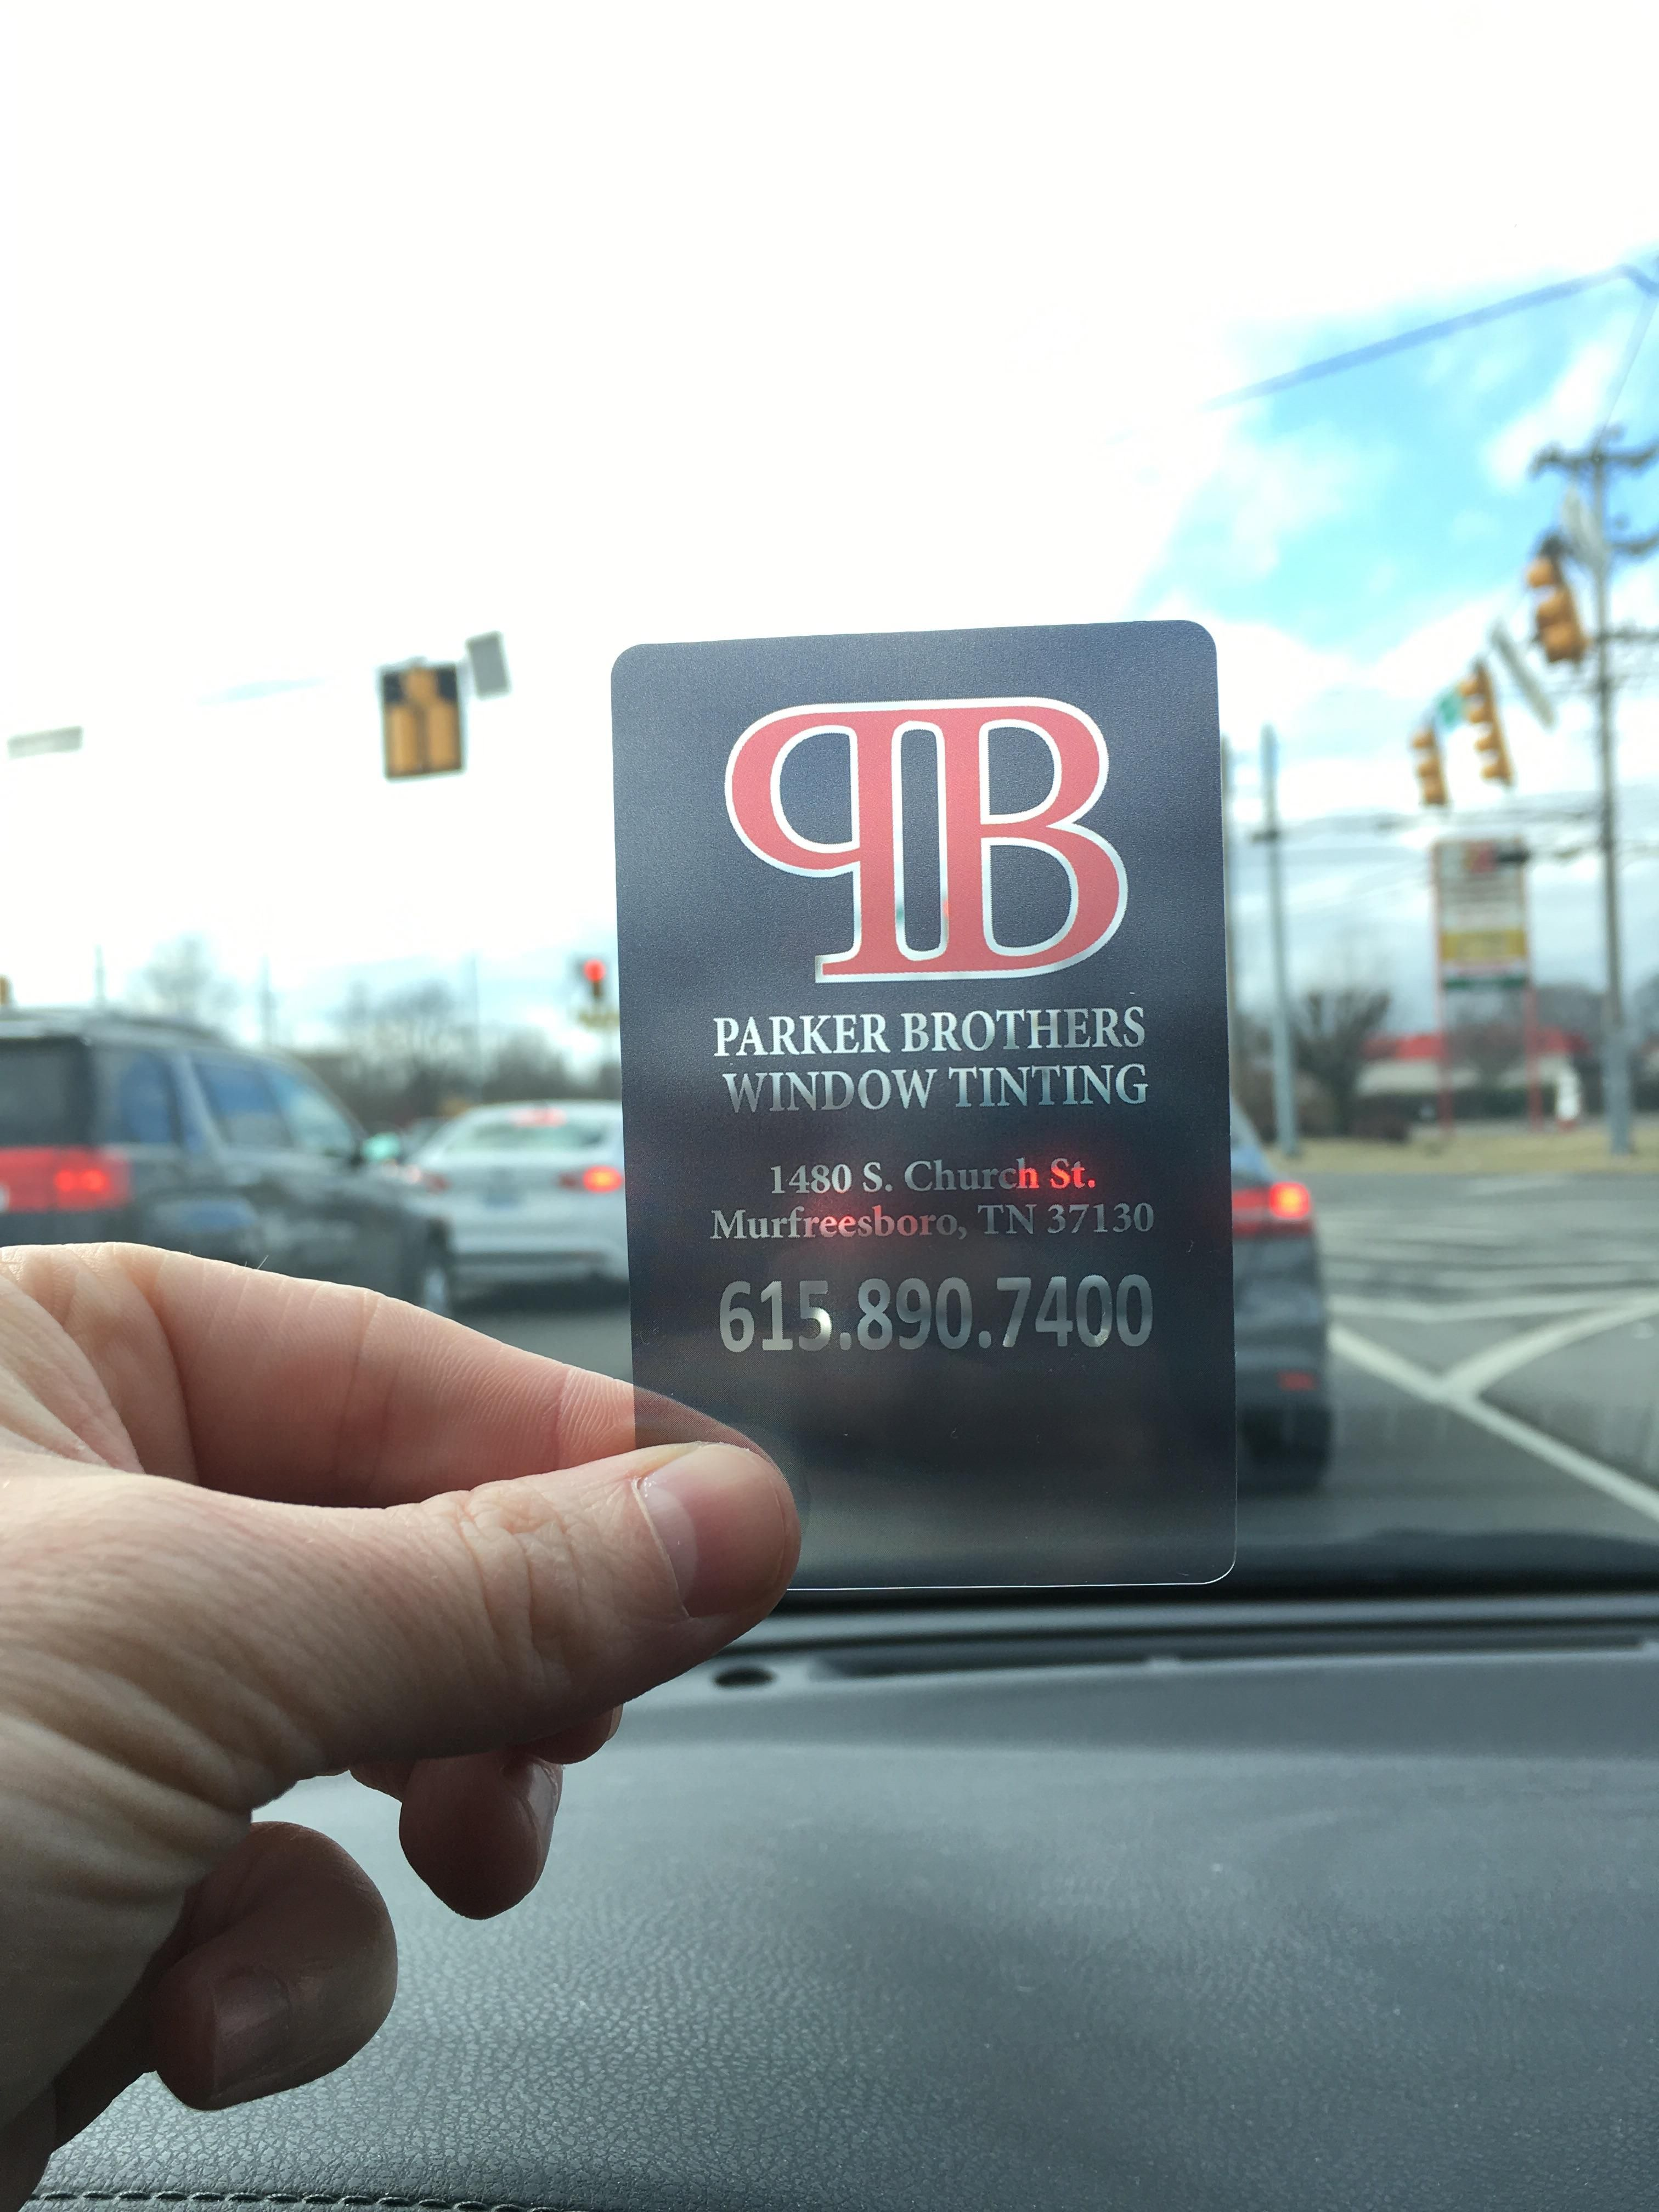 These Window Tinting Business Cards Tinted Windows Tints Business Cards